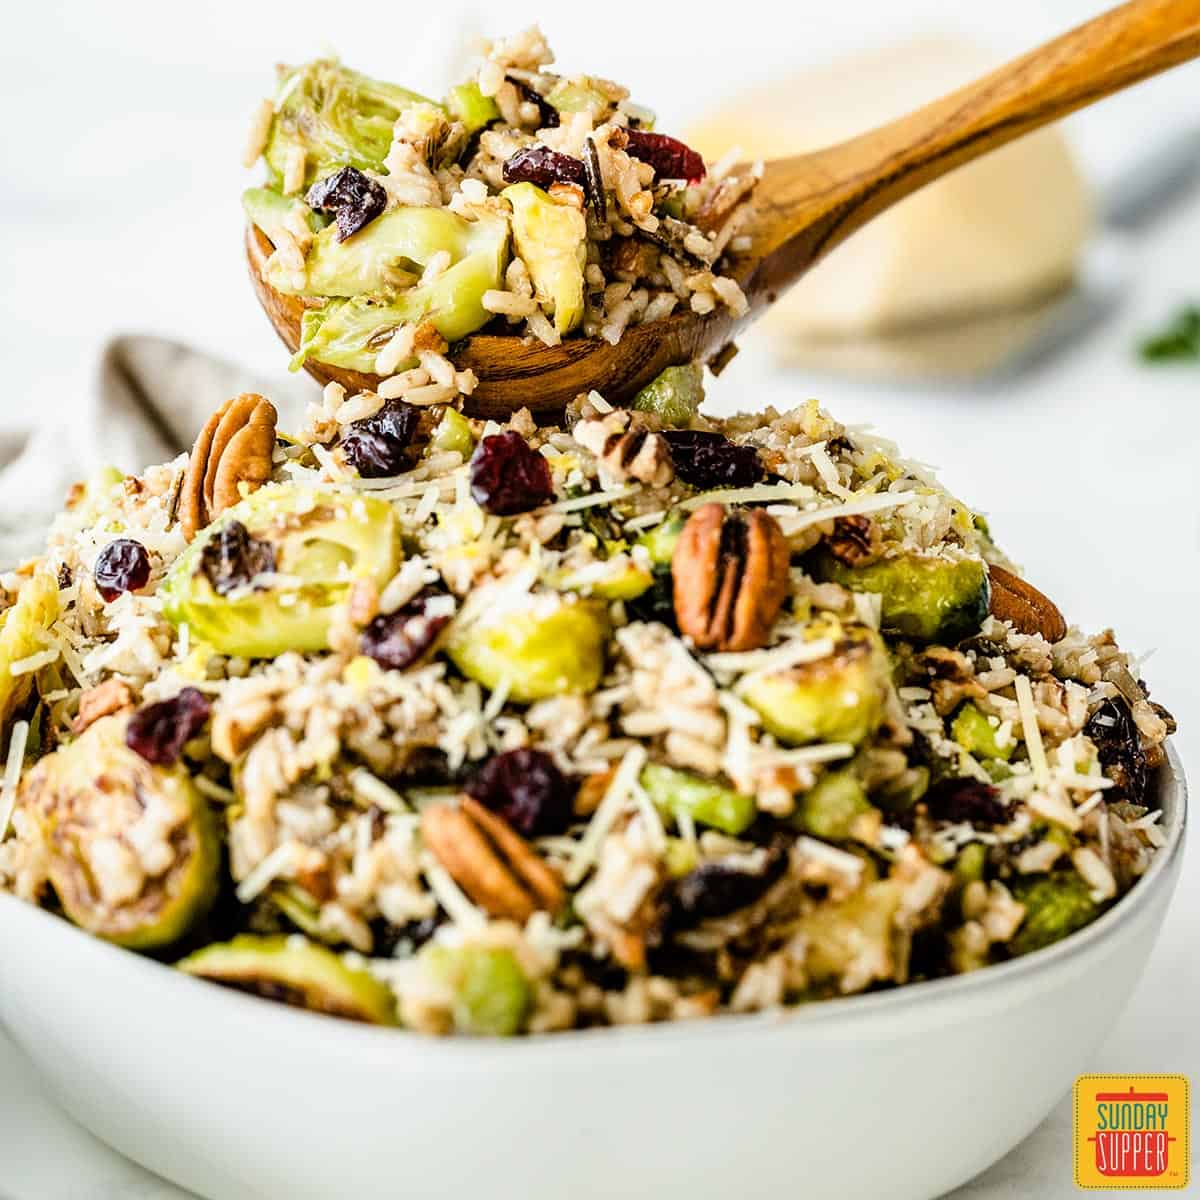 A wooden spoonful of roasted brussels sprouts salad